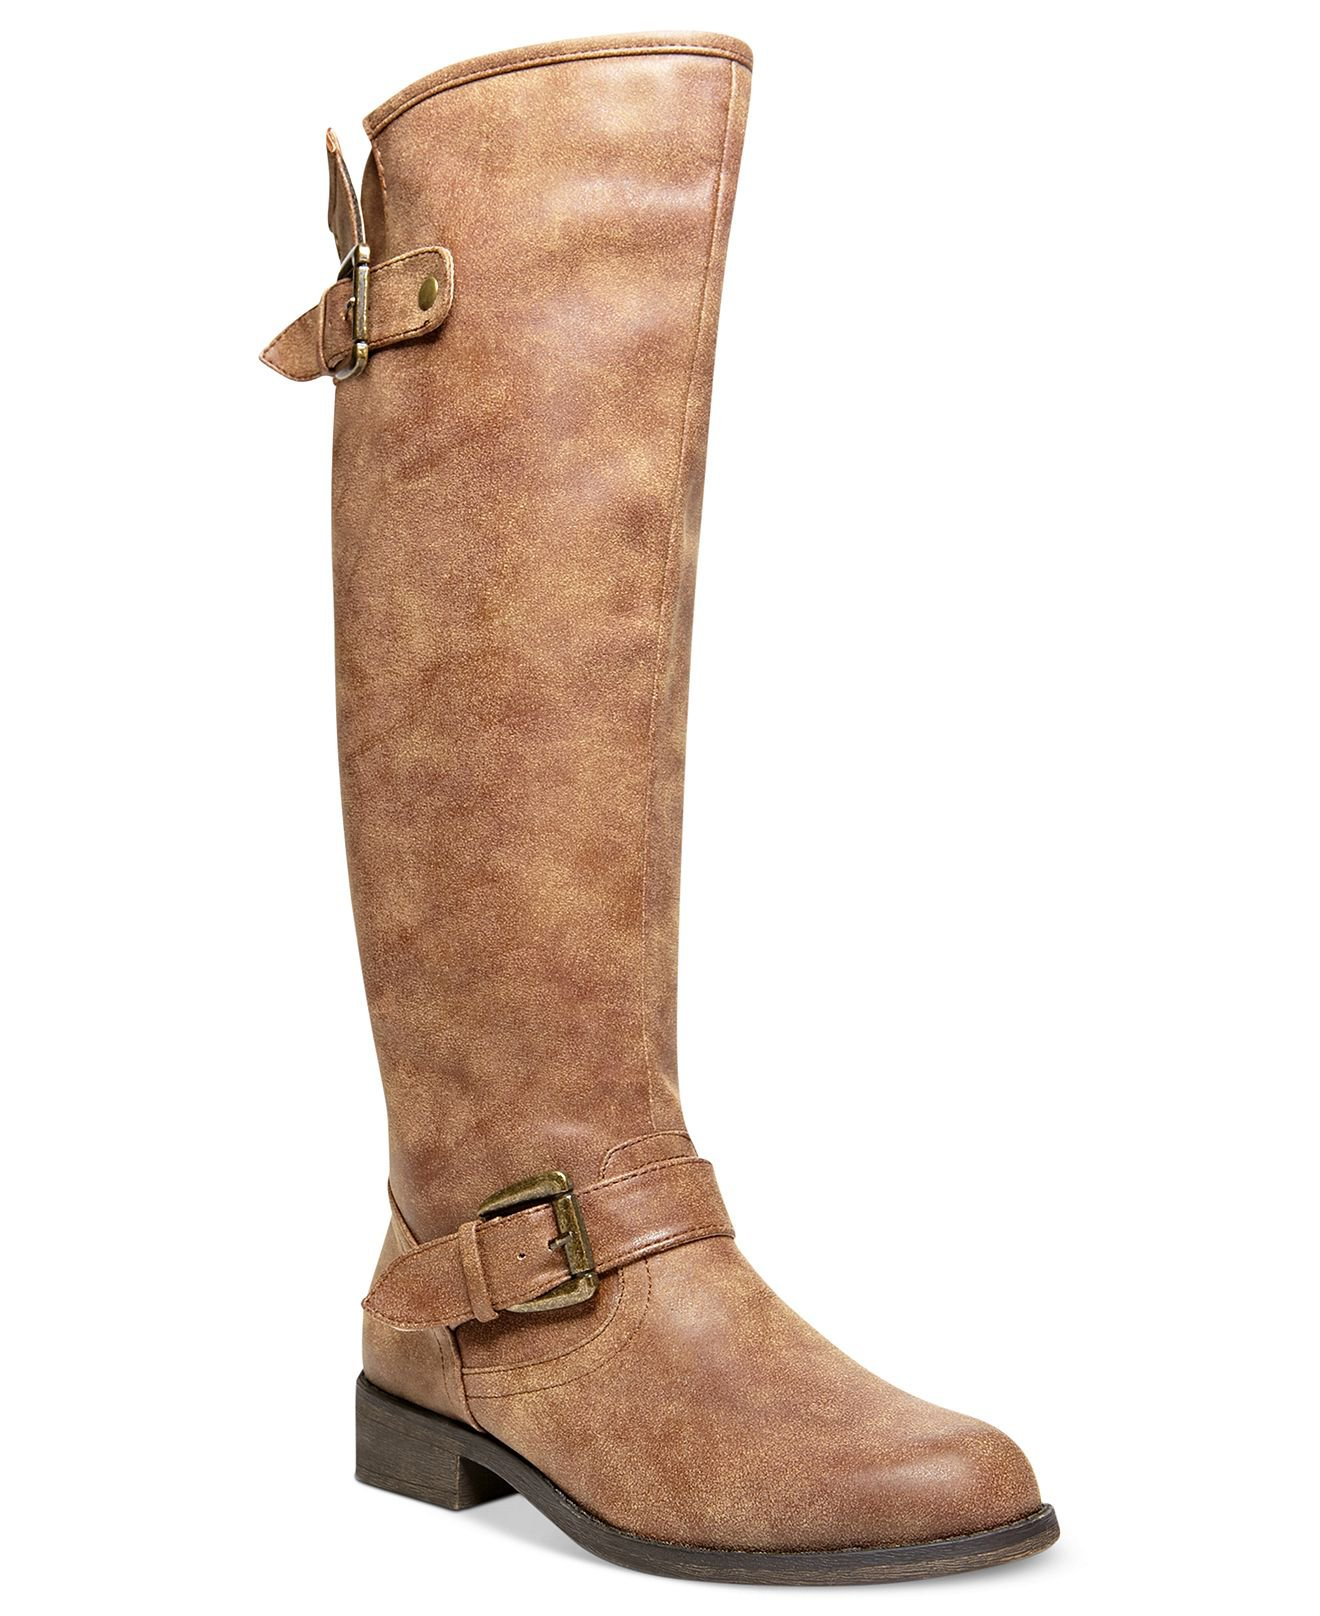 madden boots cactus boots boots from macys